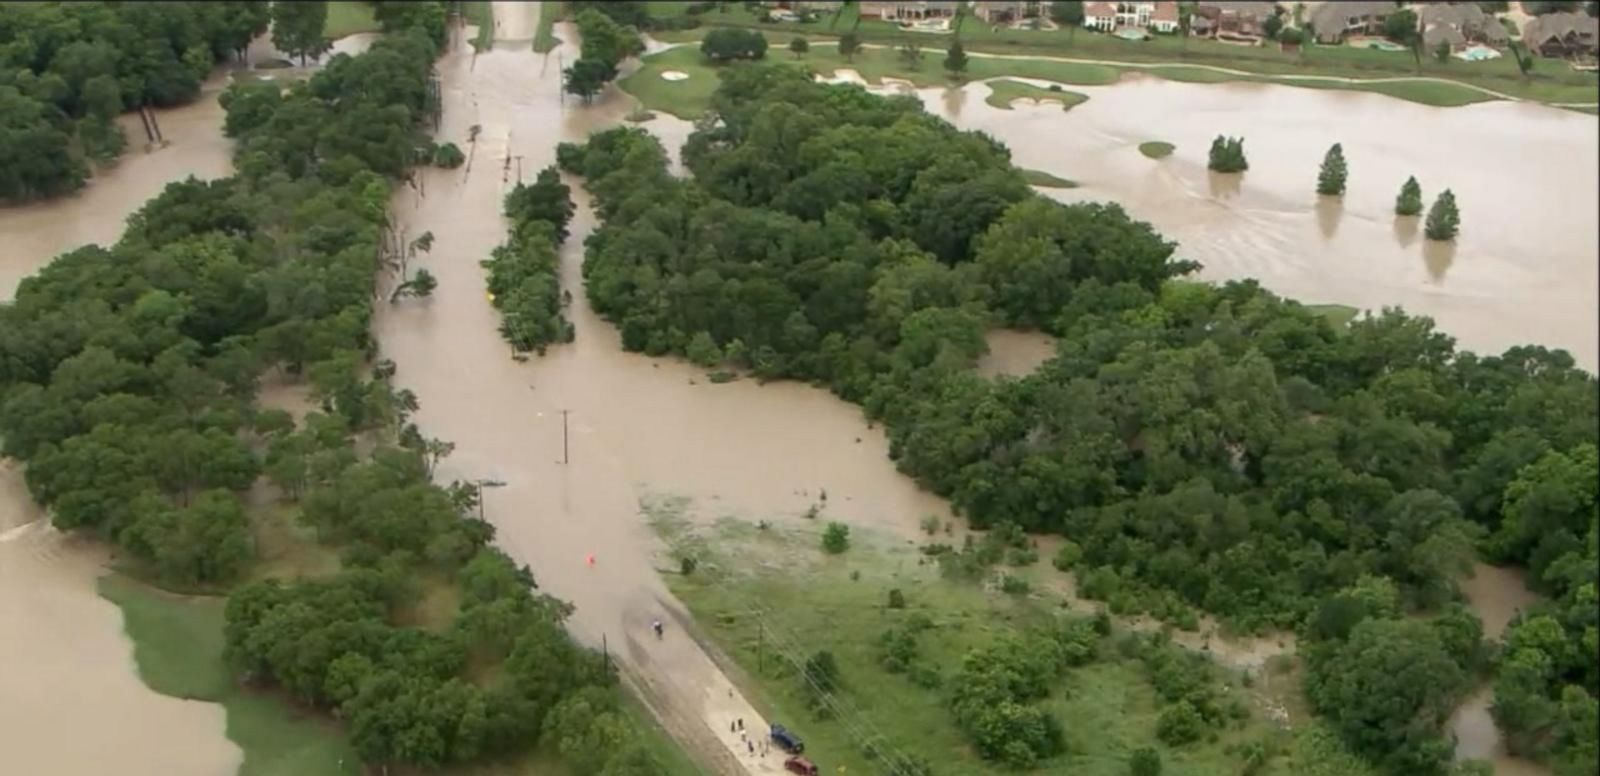 VIDEO: An already swamped Texas gets hit with another round of dousing downpours triggering more devastating flooding. ABC News' Brandi Hitt reports.